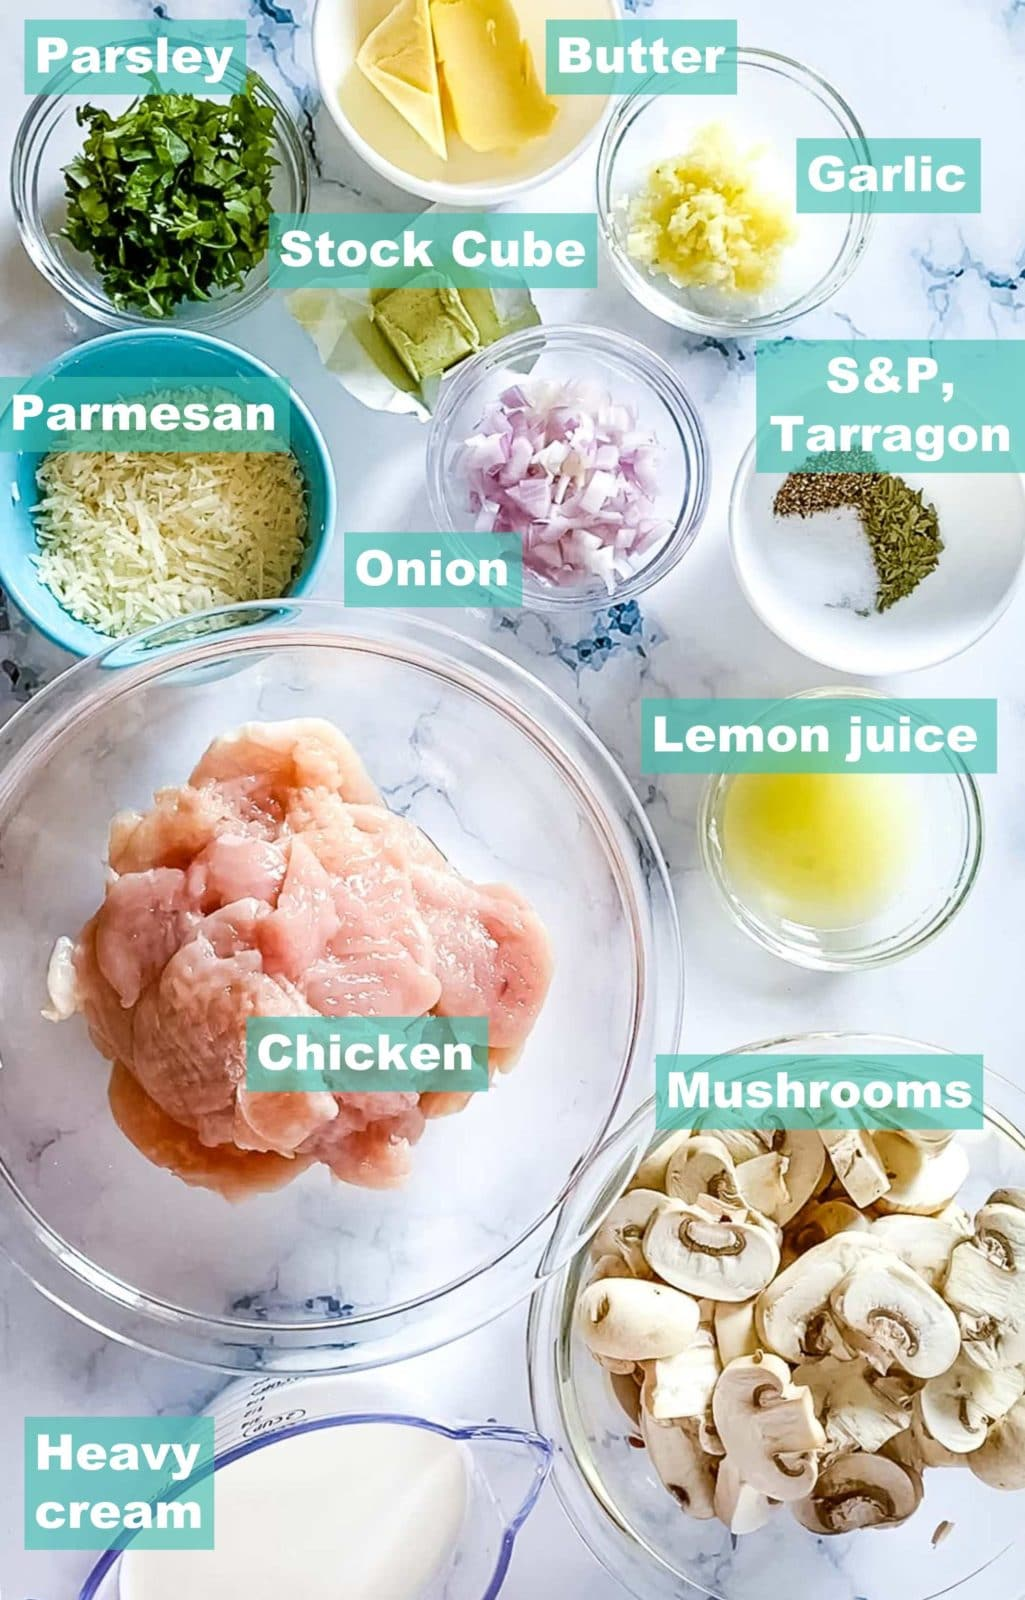 ingredients set up as mis en place for this easy keto chicken recipe